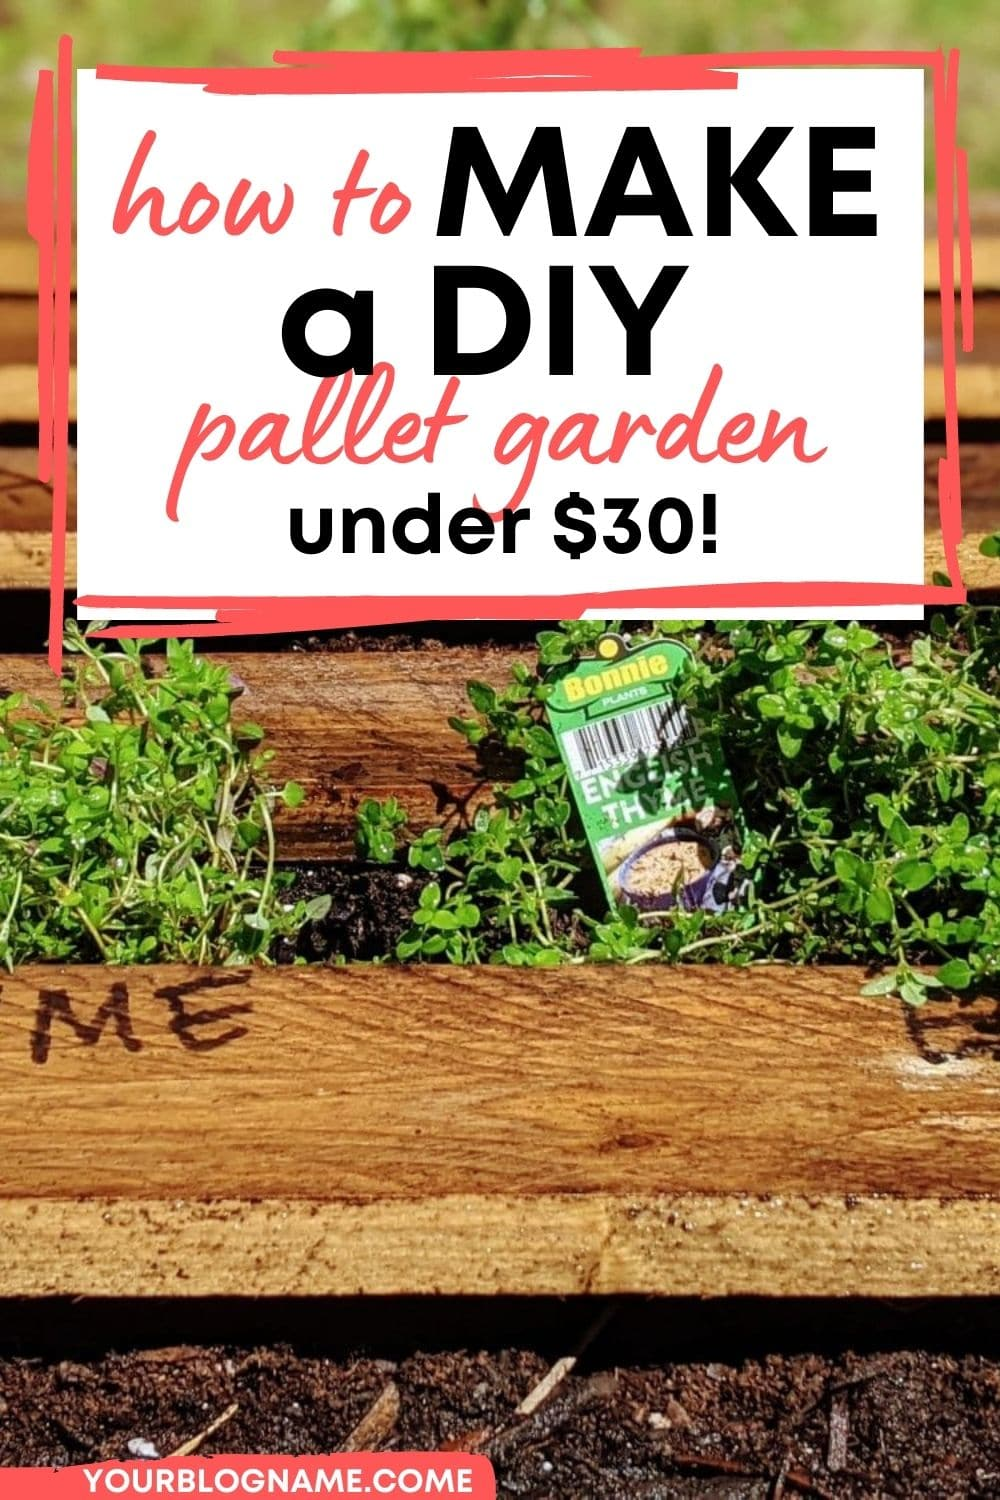 Wondering how to make your own outdoor pallet garden furniture? Looking for some DIY pallet garden ideas? Here's a beginner-friendly pallet garden furniture tutorial that will make you want to build your own pallet garden right away! This super easy tutorial will teach you how to build your own pallet garden project in just a few steps! This eco friendly DIY garden idea just costs less than $30 too! #diypalletfurniture #diygarden #palletproject #palletwood #backyardgarden #backyardgardening via @clarkscondensed